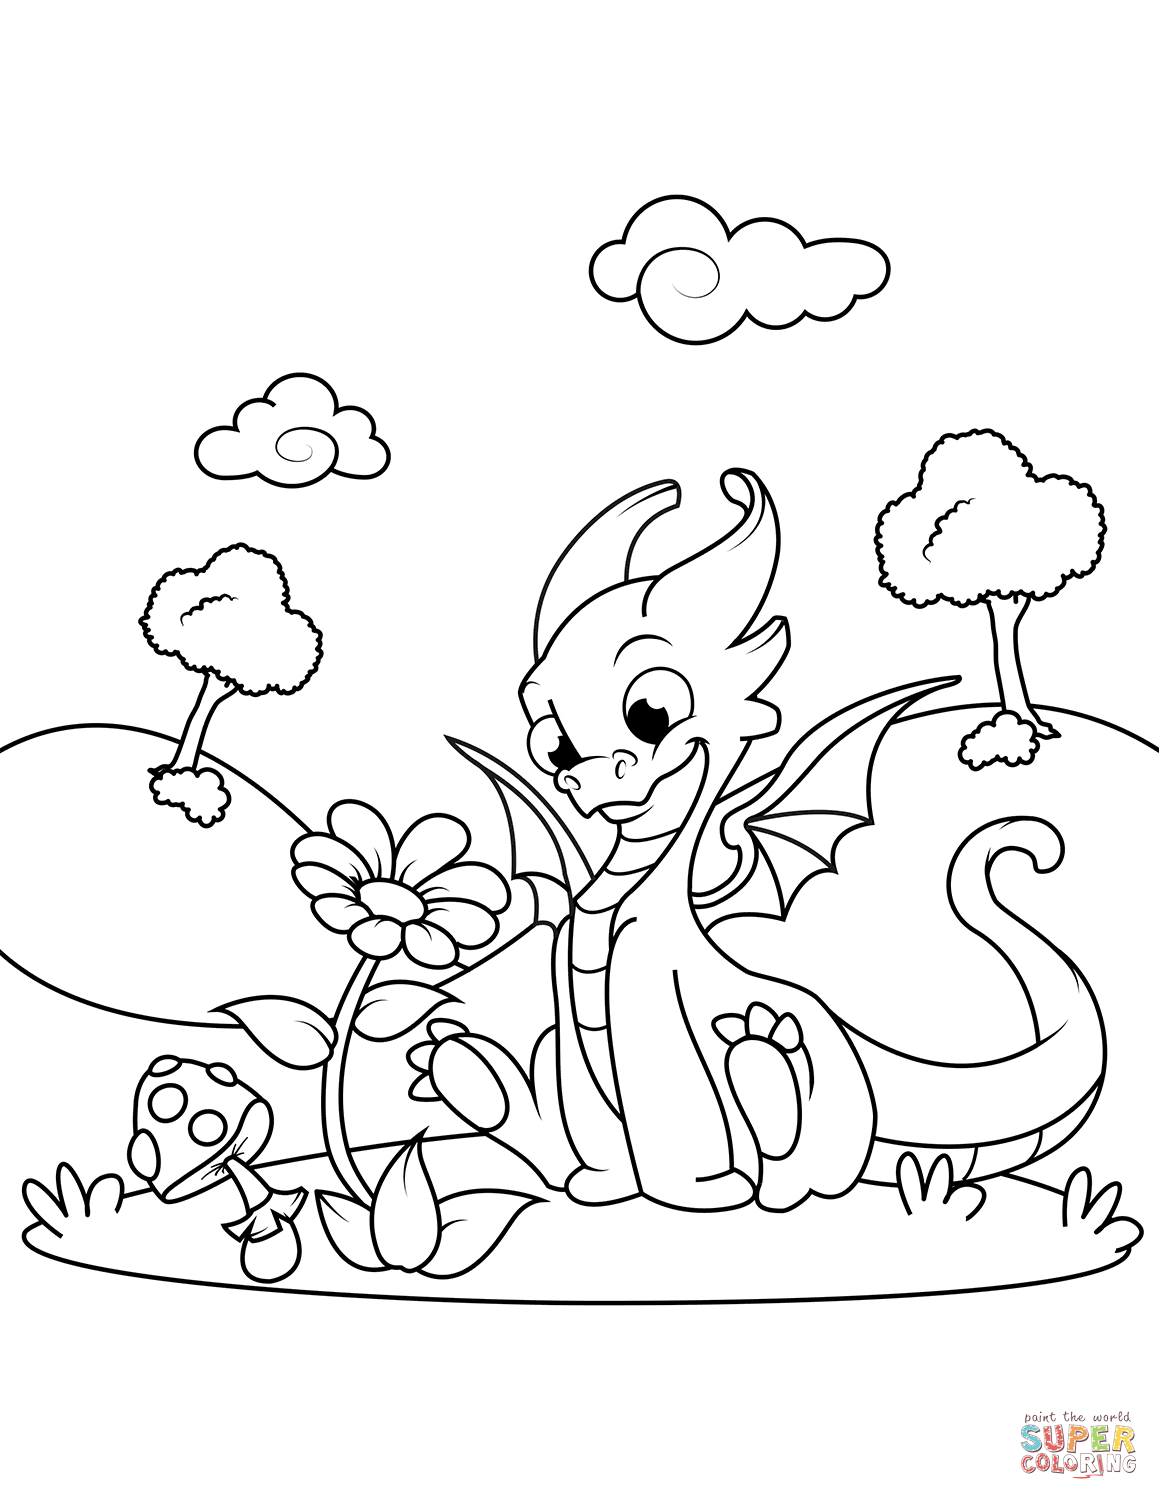 kawaii dragon coloring pages cute dragon sniffing flower coloring page free printable pages kawaii coloring dragon